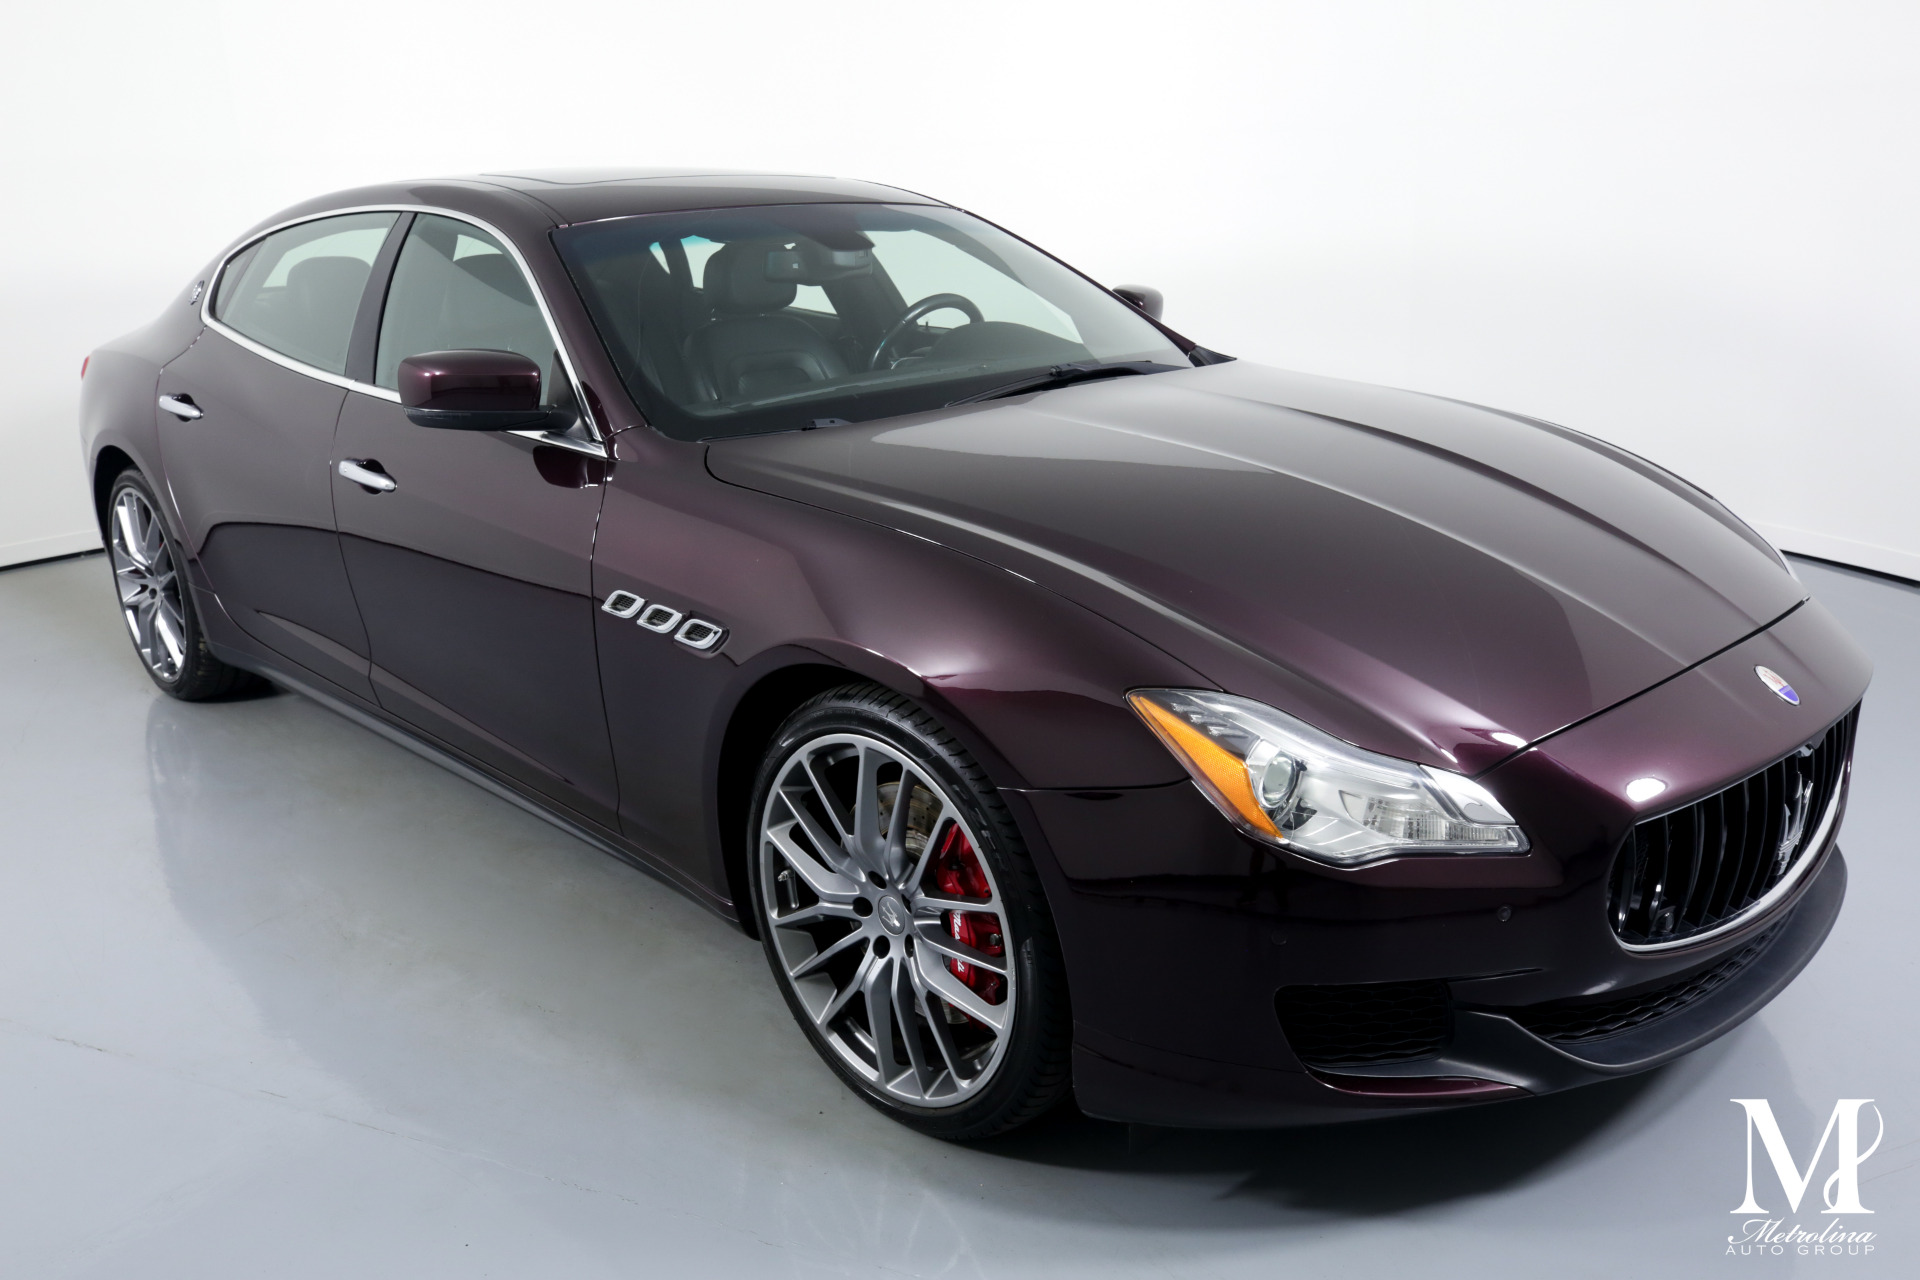 Used 2014 Maserati Quattroporte Sport GT S for sale $39,996 at Metrolina Auto Group in Charlotte NC 28217 - 2